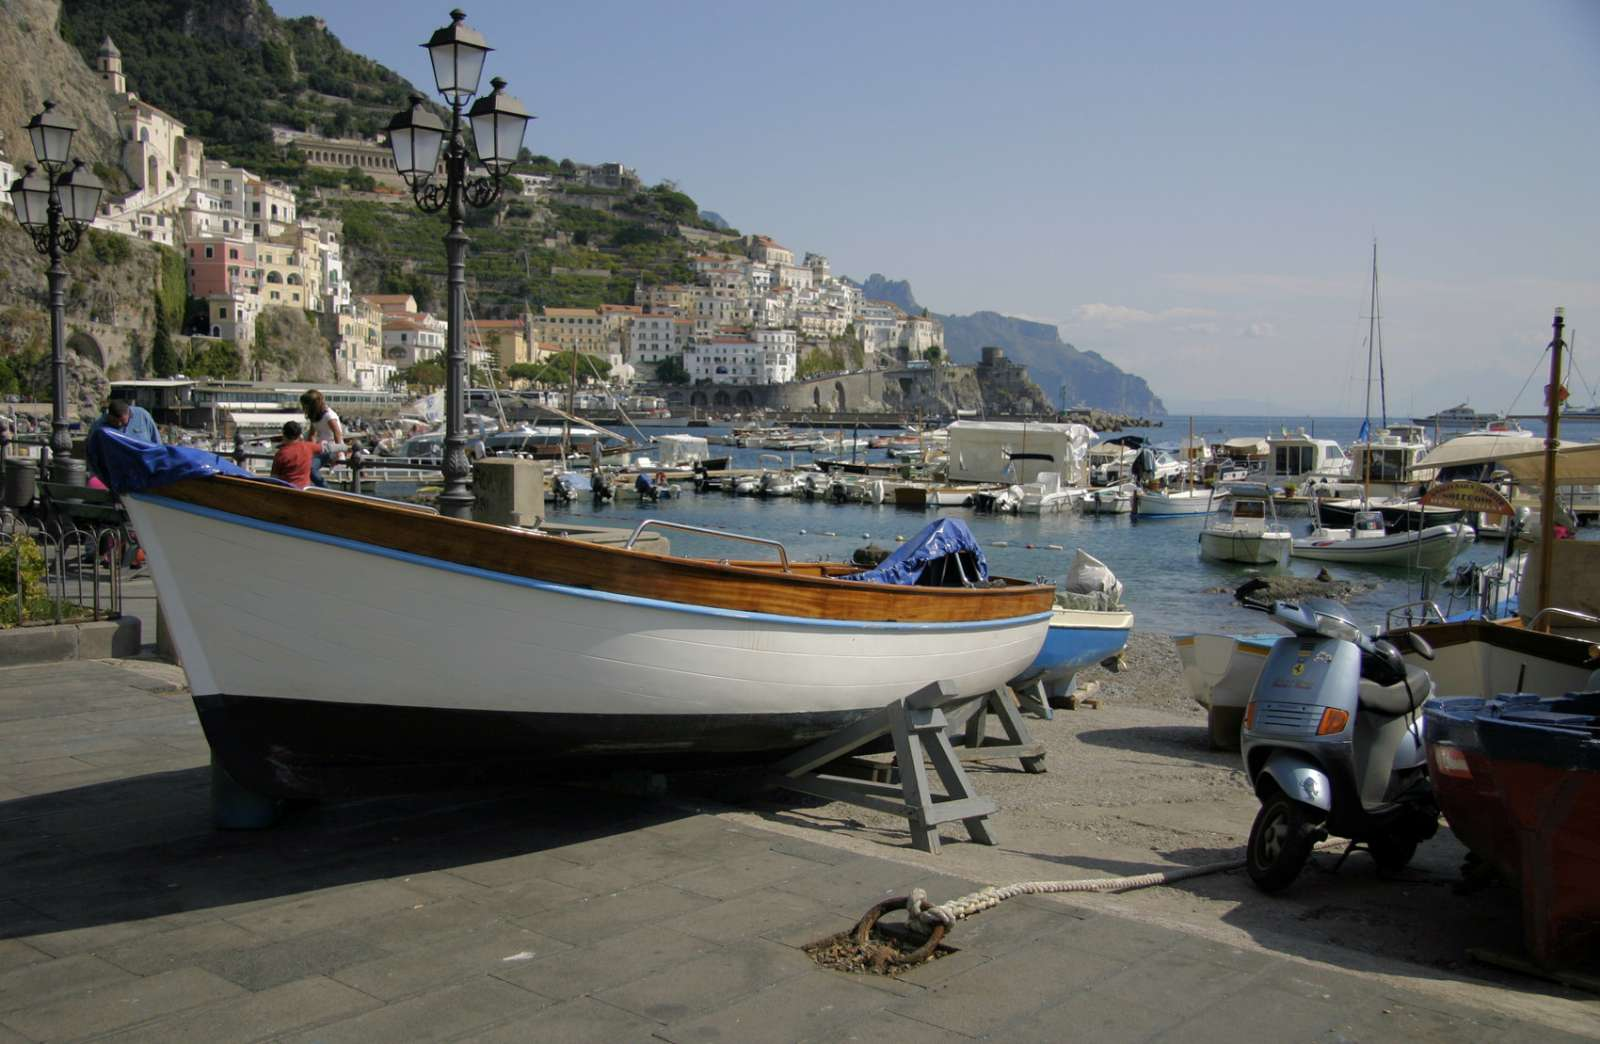 The port of Amalfi